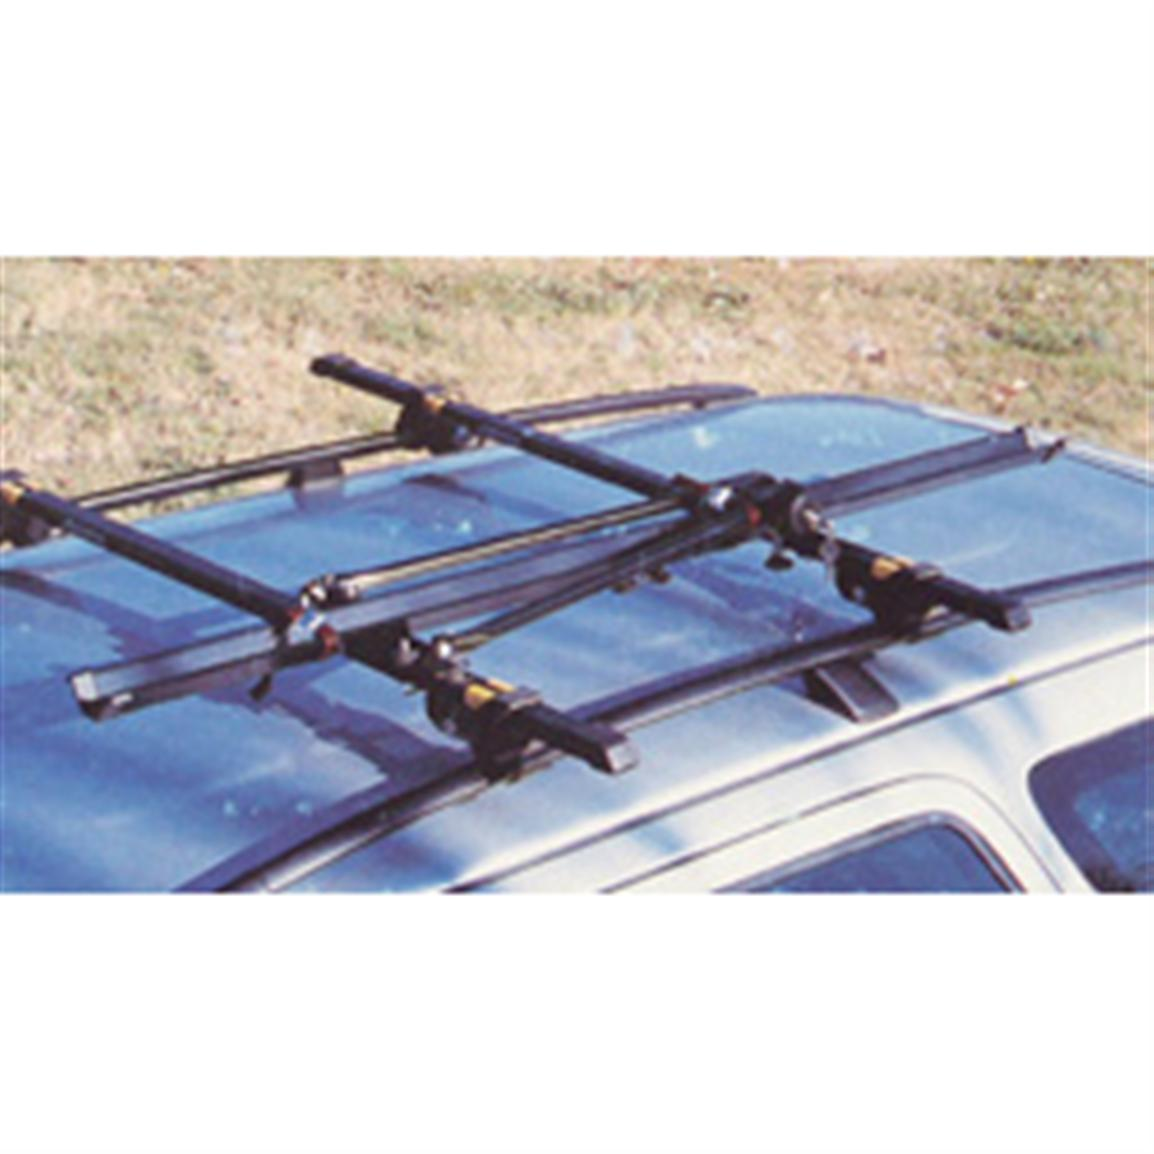 Pro Rac Systems Upright Bike Carrier